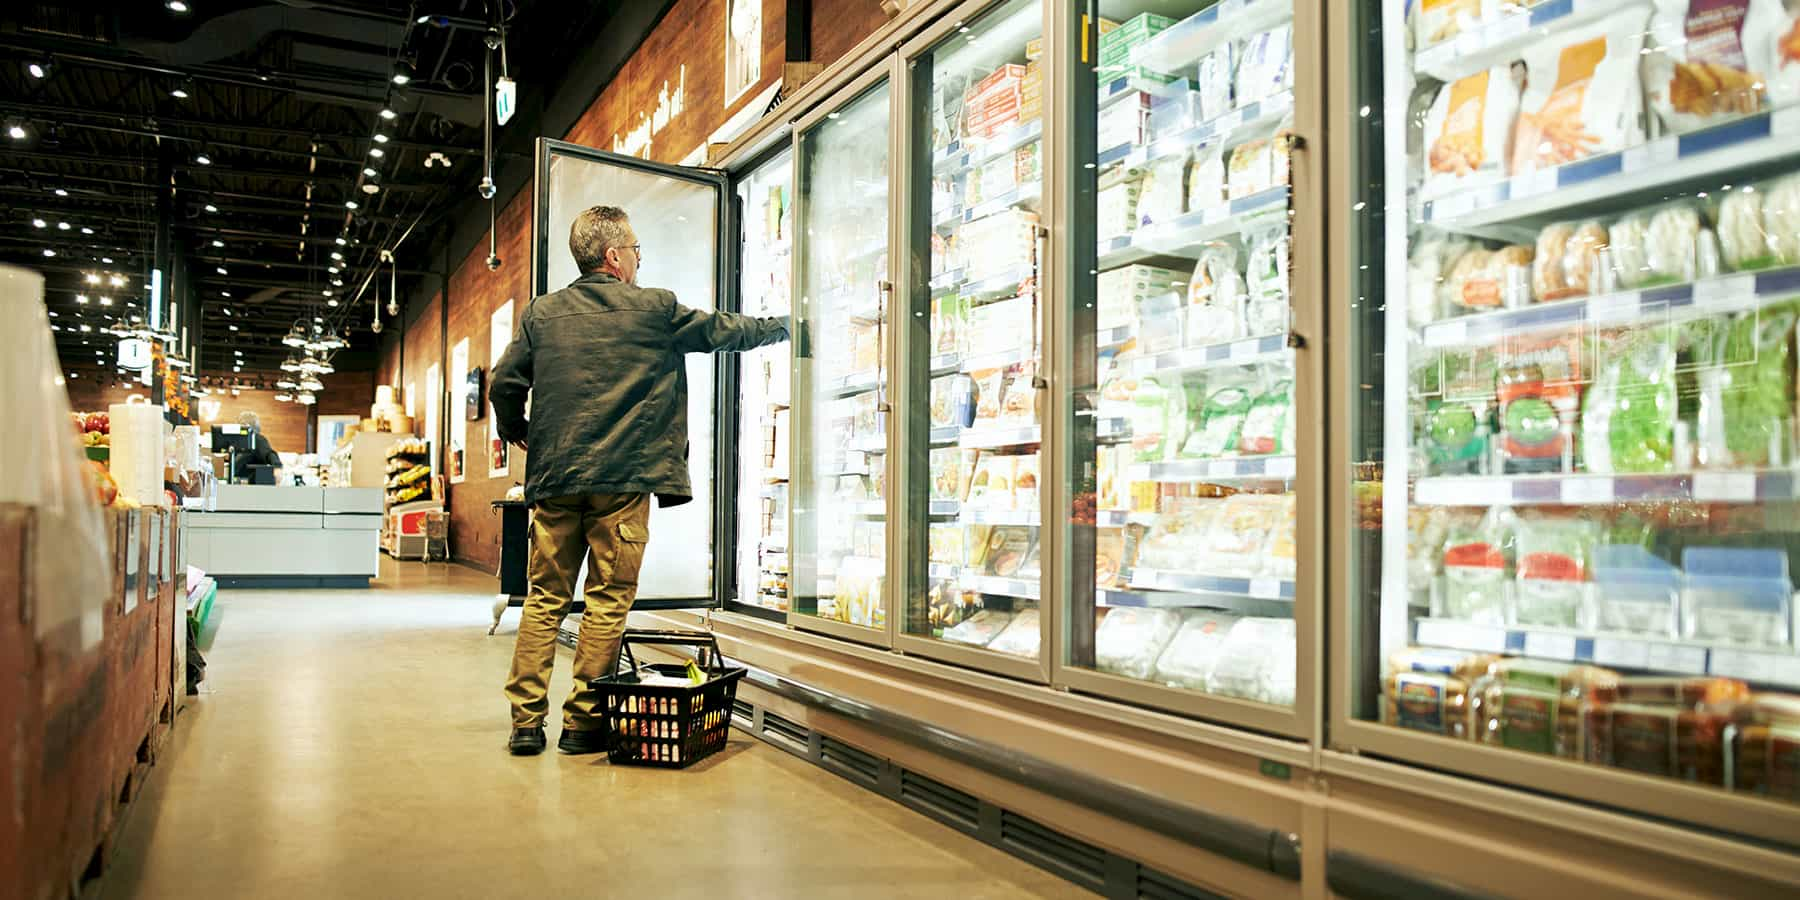 Man shopping in grocery story frozen aisle taking picking something out of the freezer shelf